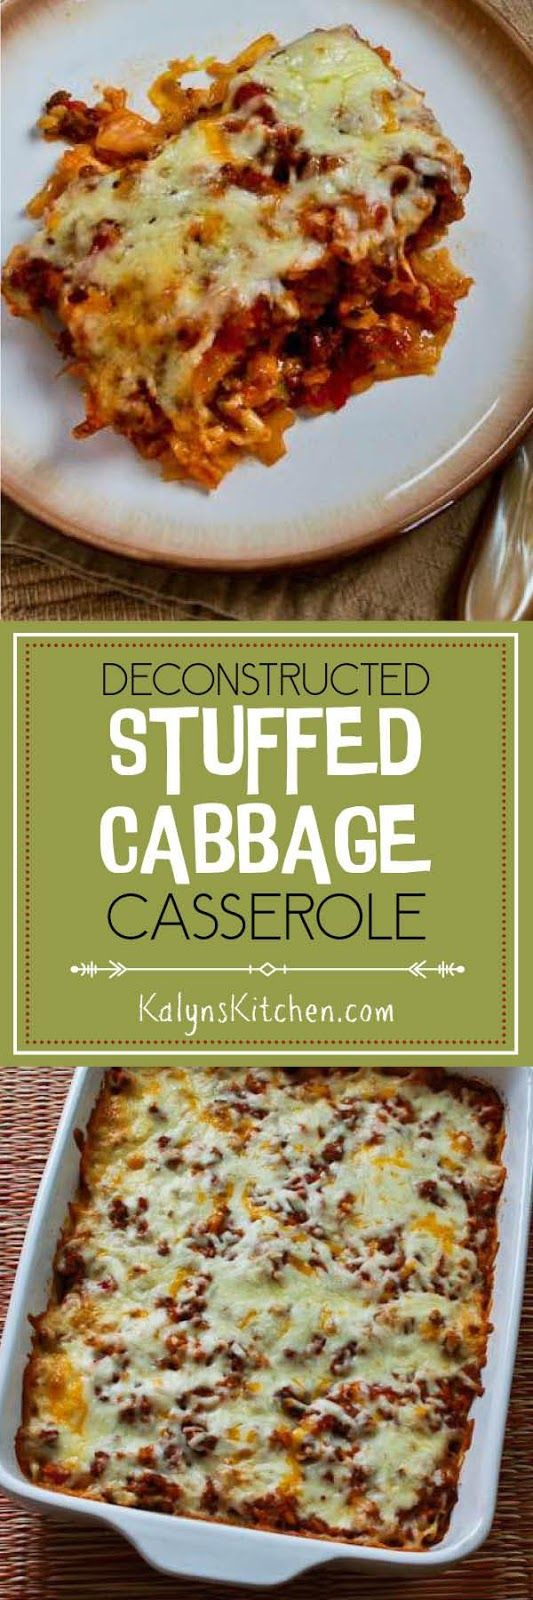 Deconstructed Stuffed Cabbage Casserole is the ultimate in winter comfort food, and this recipe is gluten-free and freezes well. It's been a hit with everyone who's tried it! [found on KalynsKitchen.com] Cheese is optional